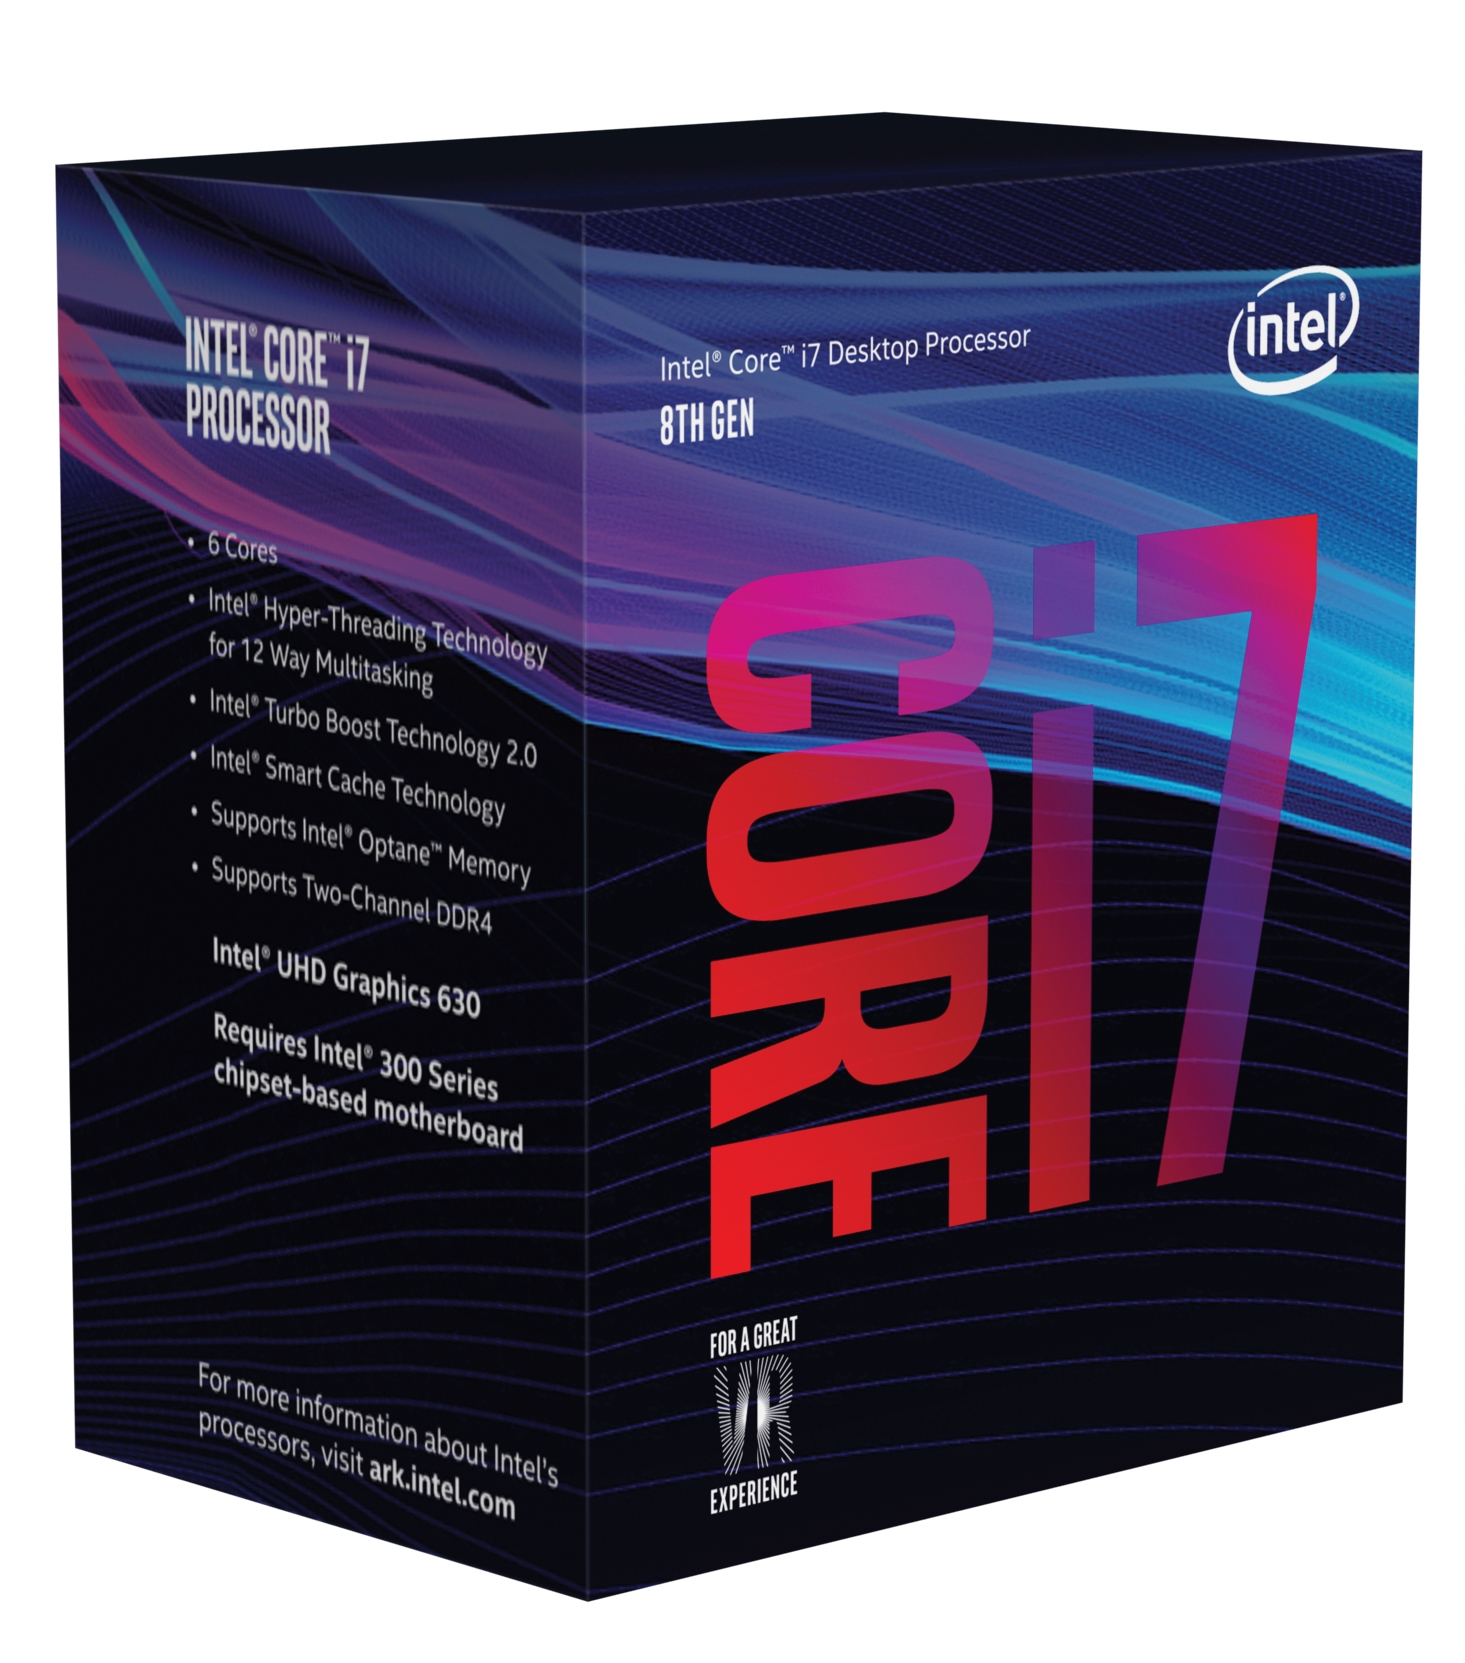 CPU INTEL I7-8700K 3.7Ghz 12MB SK1151 NO FAN